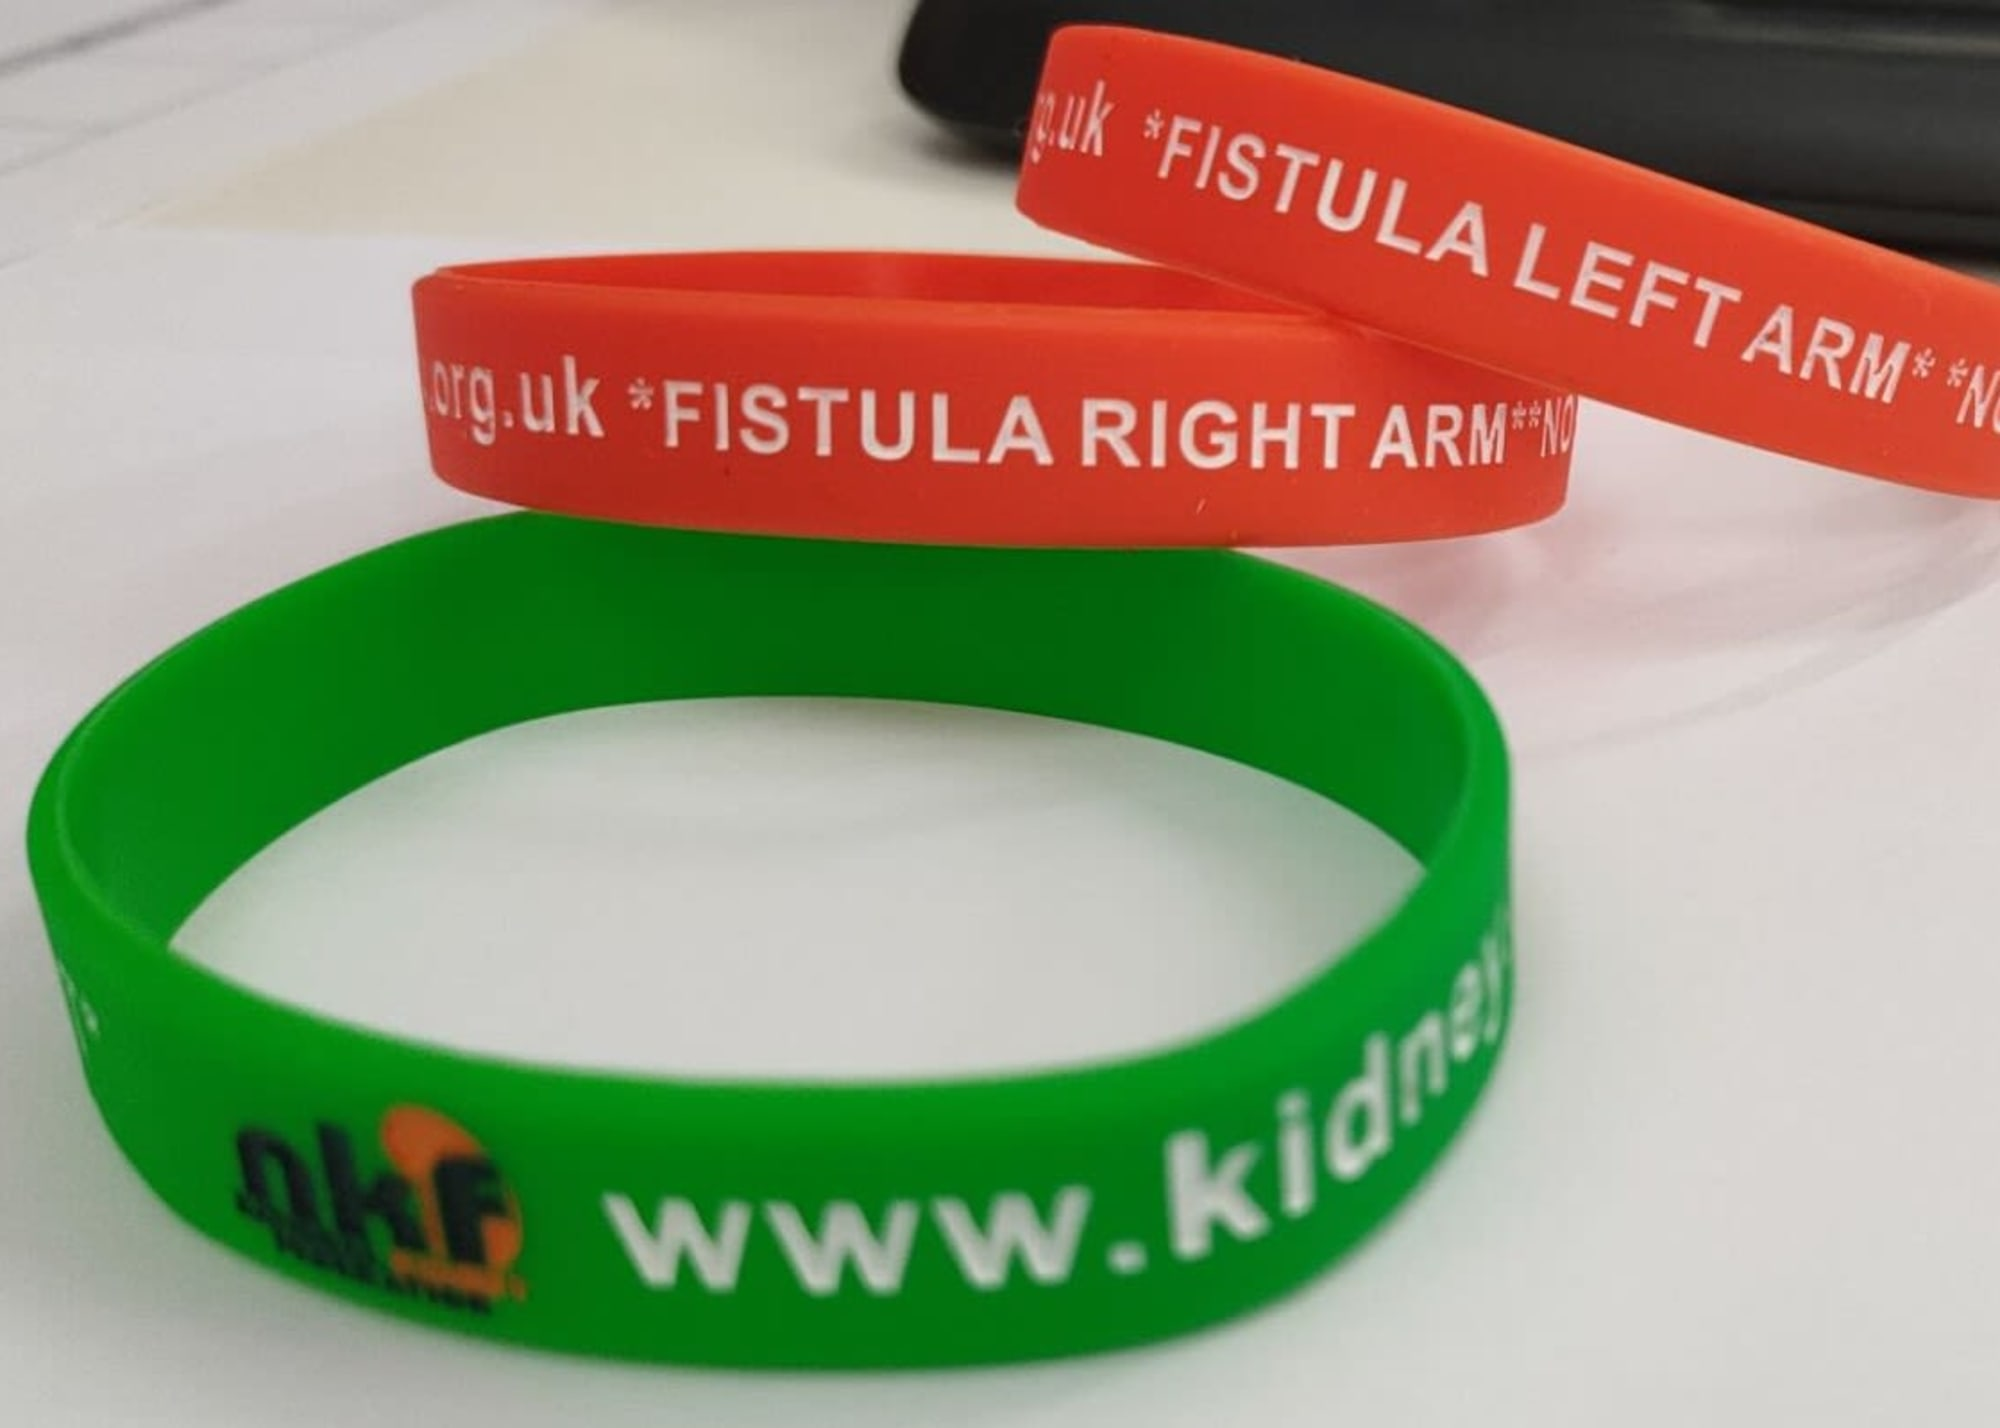 NKF Wrist Band Fistula left arm